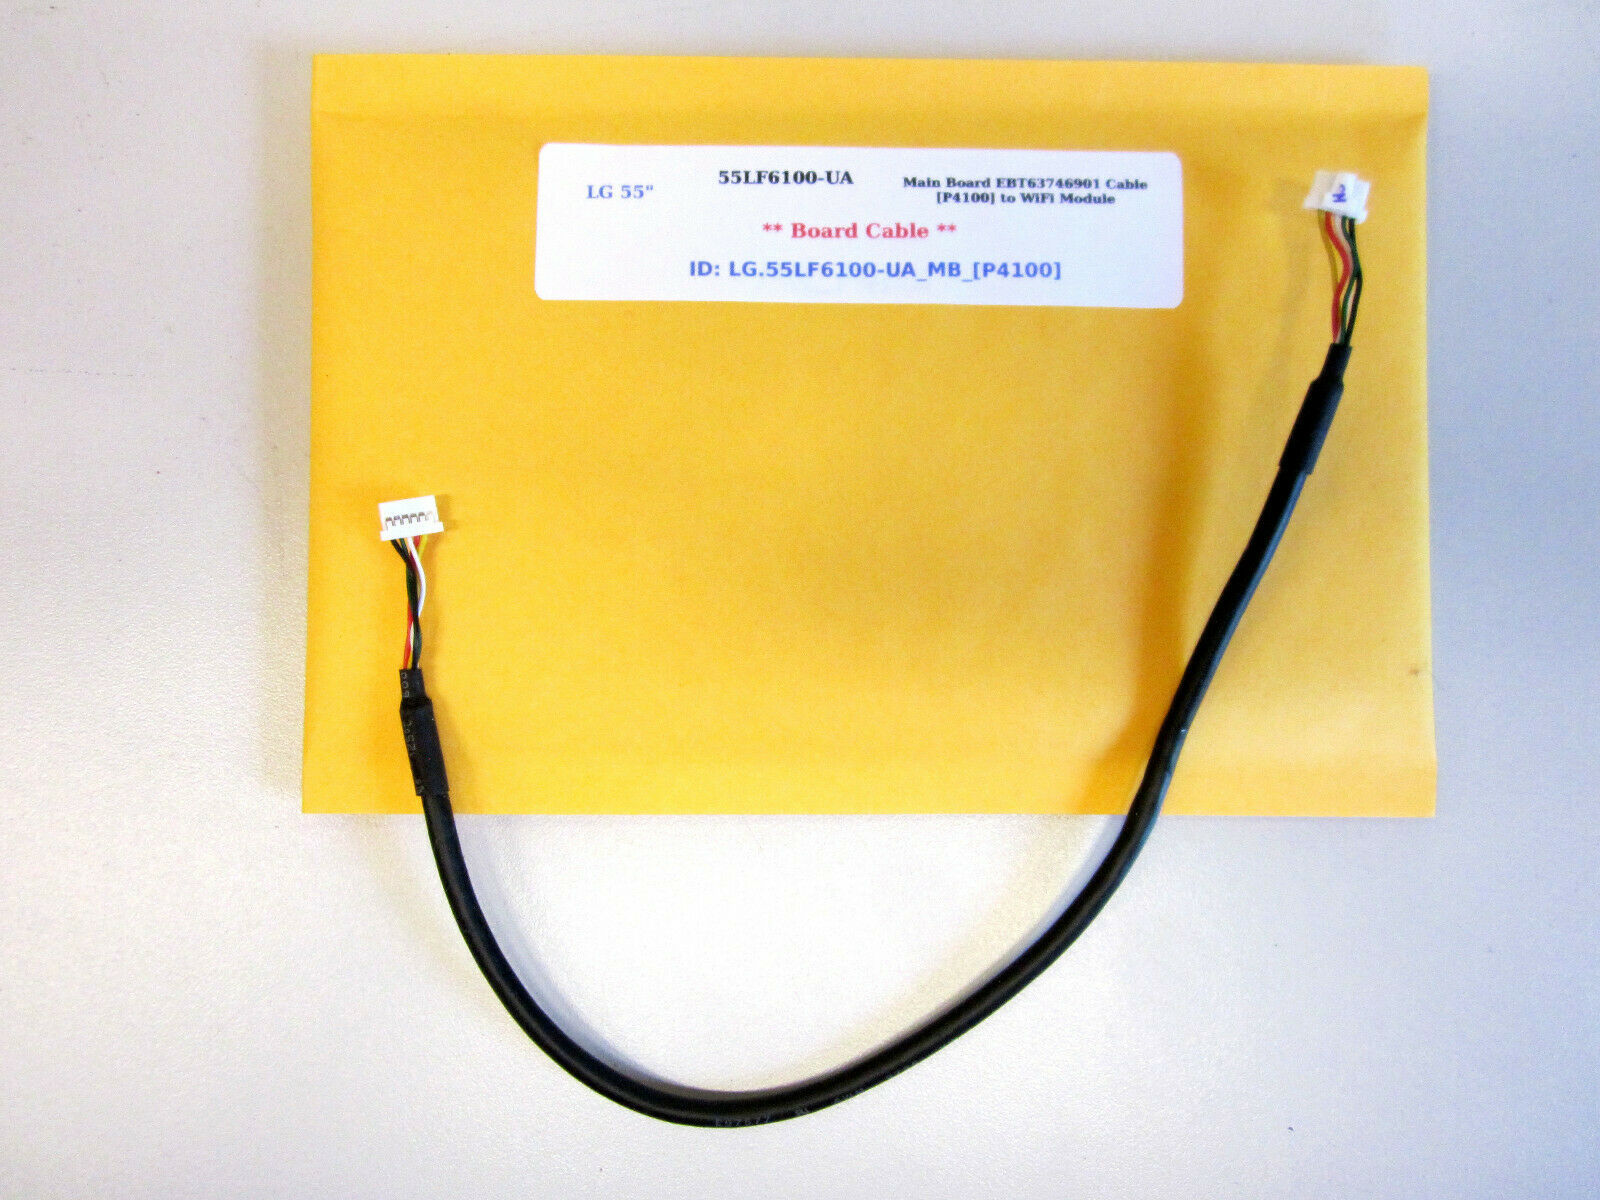 "Primary image for LG 55"" 55LF6100-UA-BUSYL.JR Main Board EBT63746901 Cable [P4100] to WiFi Module"